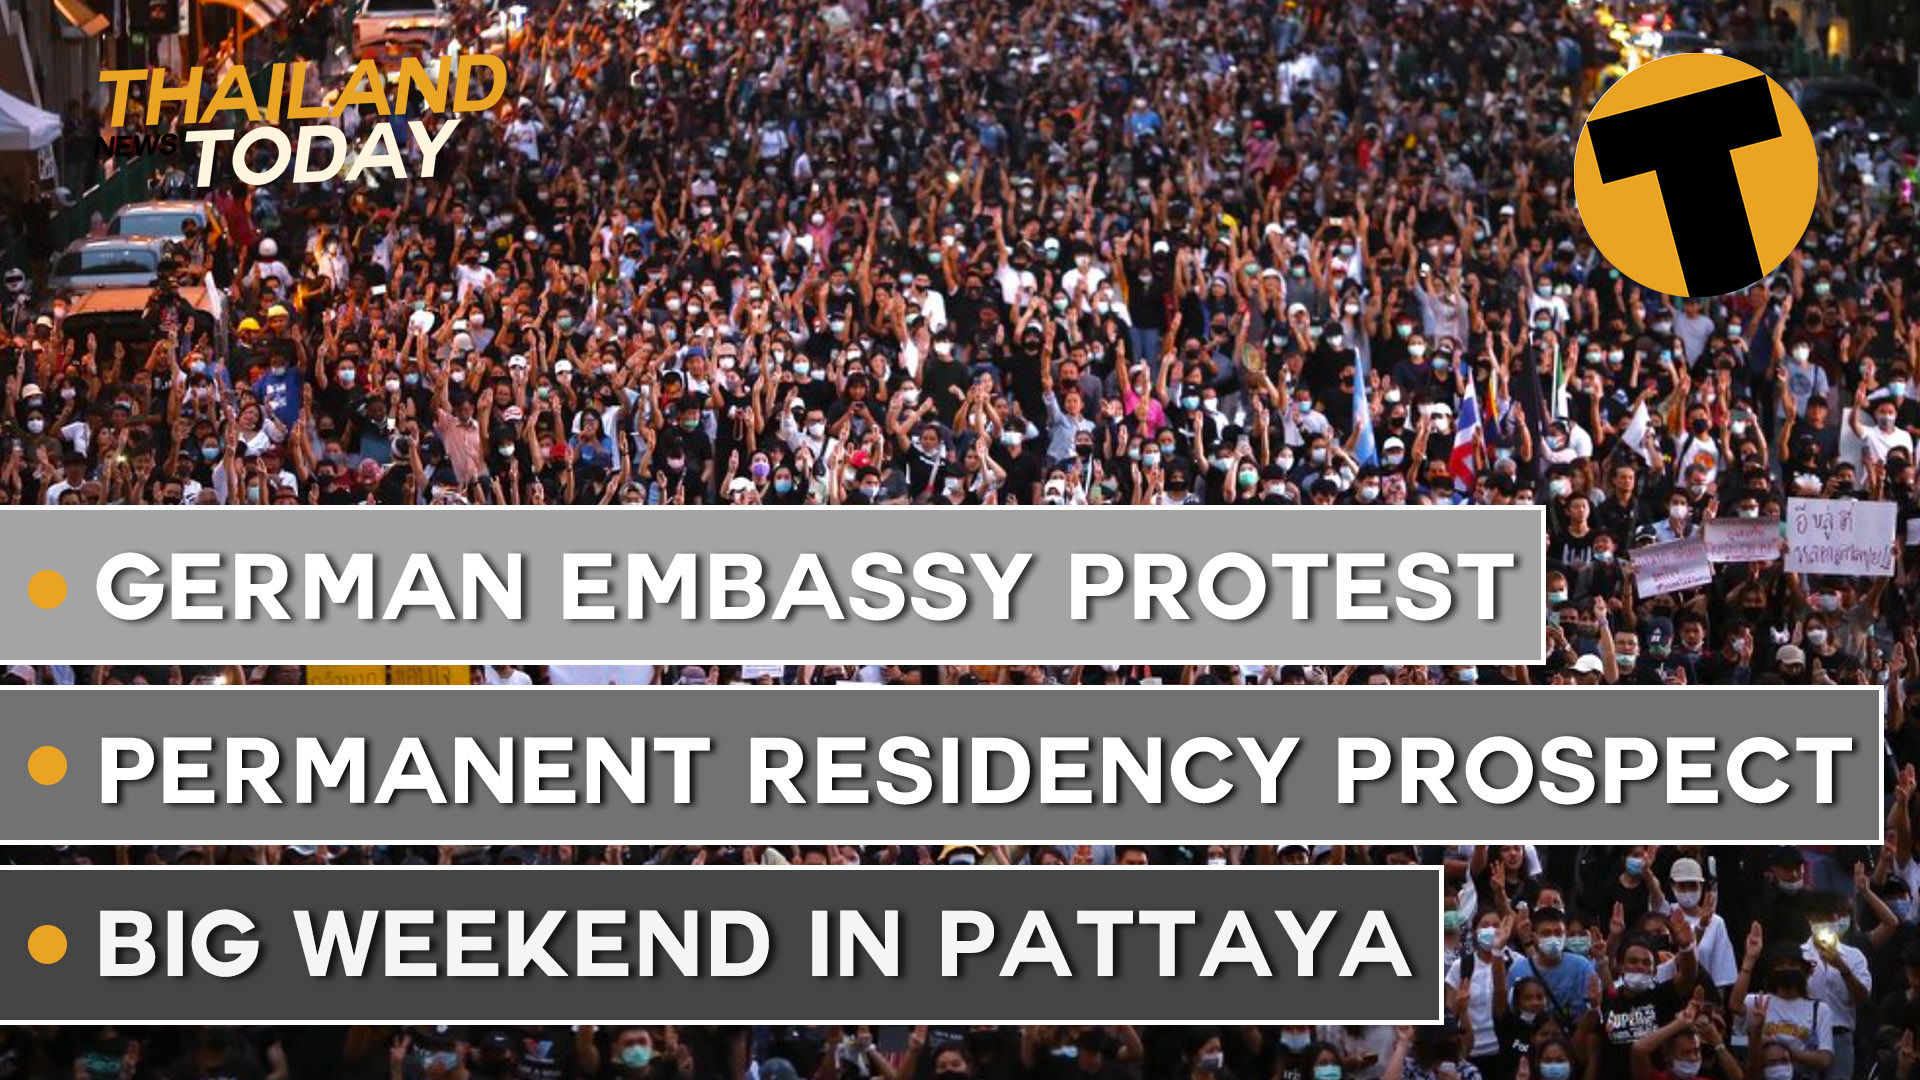 Thailand News Today | German Embassy rally, permanent residency prospect, crowds in Pattaya | Oct 26